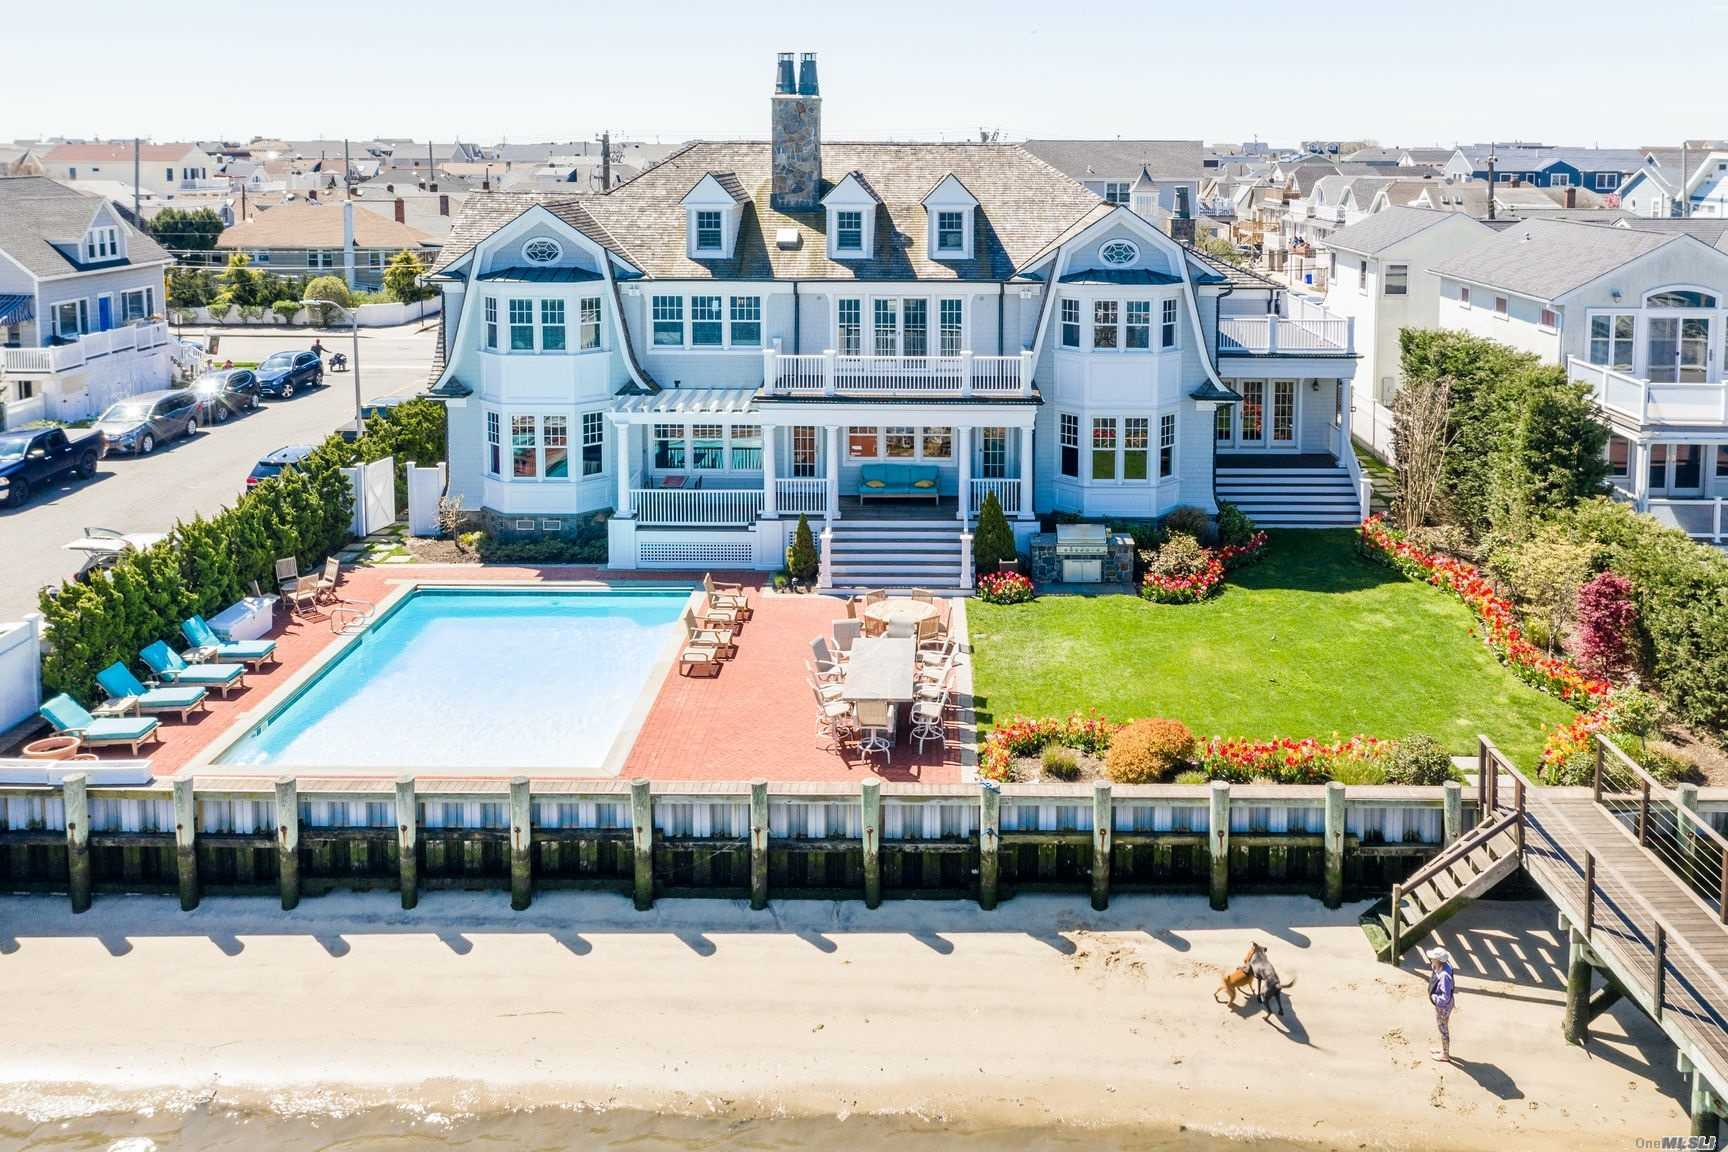 Spectacular Hamptons Like Mansion Located On Reynolds Channel With Picturesque City Skyline Views & Amazing Sunsets. 1st Flr: Grand Foyer, Sunken Living Room w/Wood Burning Stone Fireplace & Bar Area, Office, 1/2 Bath, Gourmet Chef's Kitchen w/Custom Cabinetry Marble Countertops Viking & Sub Zero Appliances & Butler's Pantry, Formal Dining Room, Family Room, Mahogany Wood Paneled Billiard Rm w/Gents Bth. Palatial Staircase to 2nd Fl: Grand Master Suite Features: Gas Fireplace, Coffered Ceiling, Large Arched Shower & Jacuzzi Tub, Double Vanity, His & Her Oversized Walk-In Closets, 4 Add'l Bdrms (2 Ensuite) & Attic Dorm Room w/Sleeping for 6. Bayfront Outdoor Living Area Features: State Of The Art Dock System w/3 Boat Lifts, IG Heated Salt Water Pool, Built In Bbq & Outdoor Bath & Shower.2 Car Garage/Parking for 10 Cars. 3D Virtual Tour Attached. Please See Fact Sheet For Full Property Details. Stunning Master Craftsmen Home w/Impeccable Attention To Detail. Must Be Seen To Be Believed!